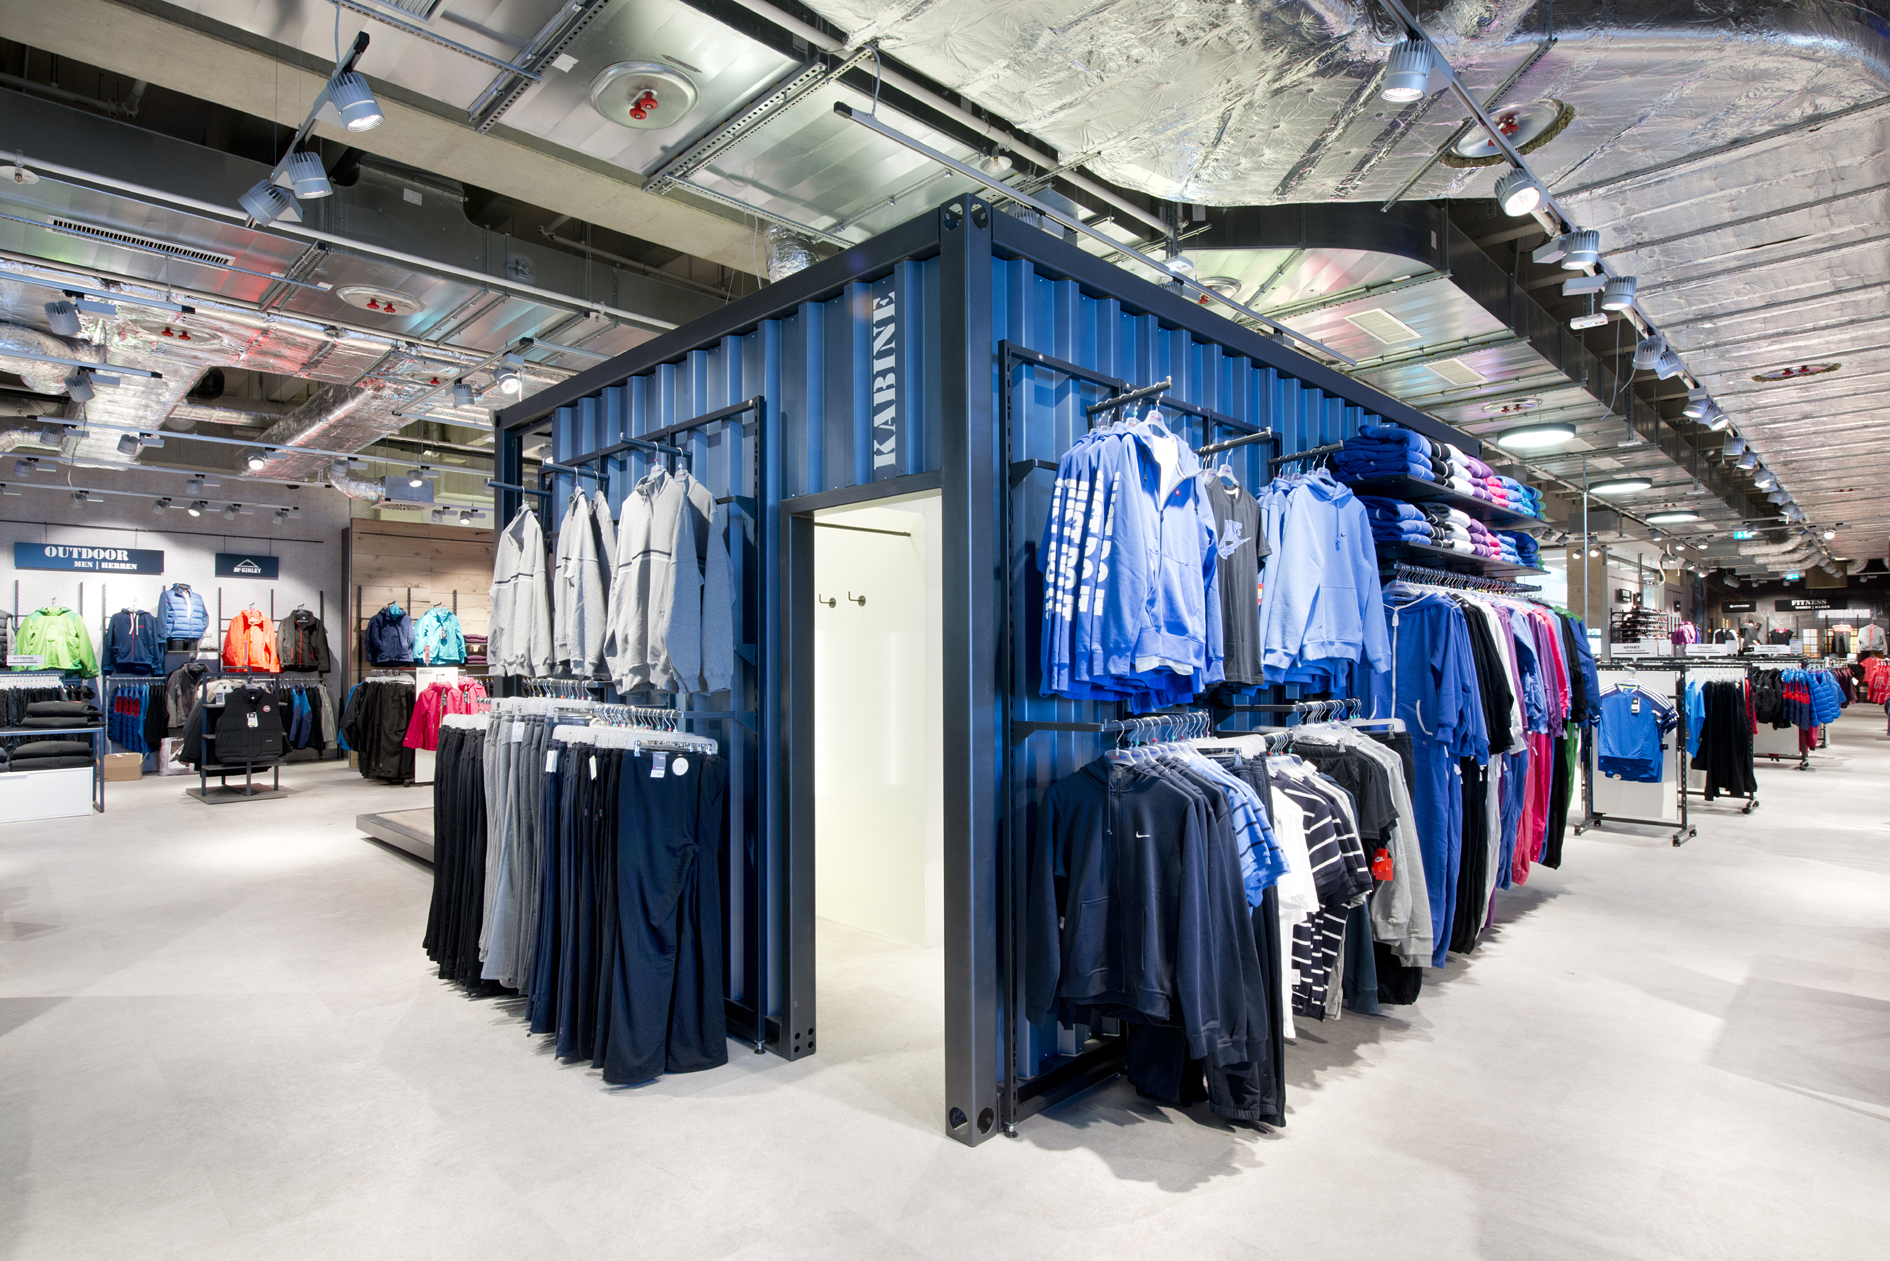 Intersport Jürgensen Citti-Park Container Indursrie Look Shopdesign Innenarchitektur Nette+Hartmann